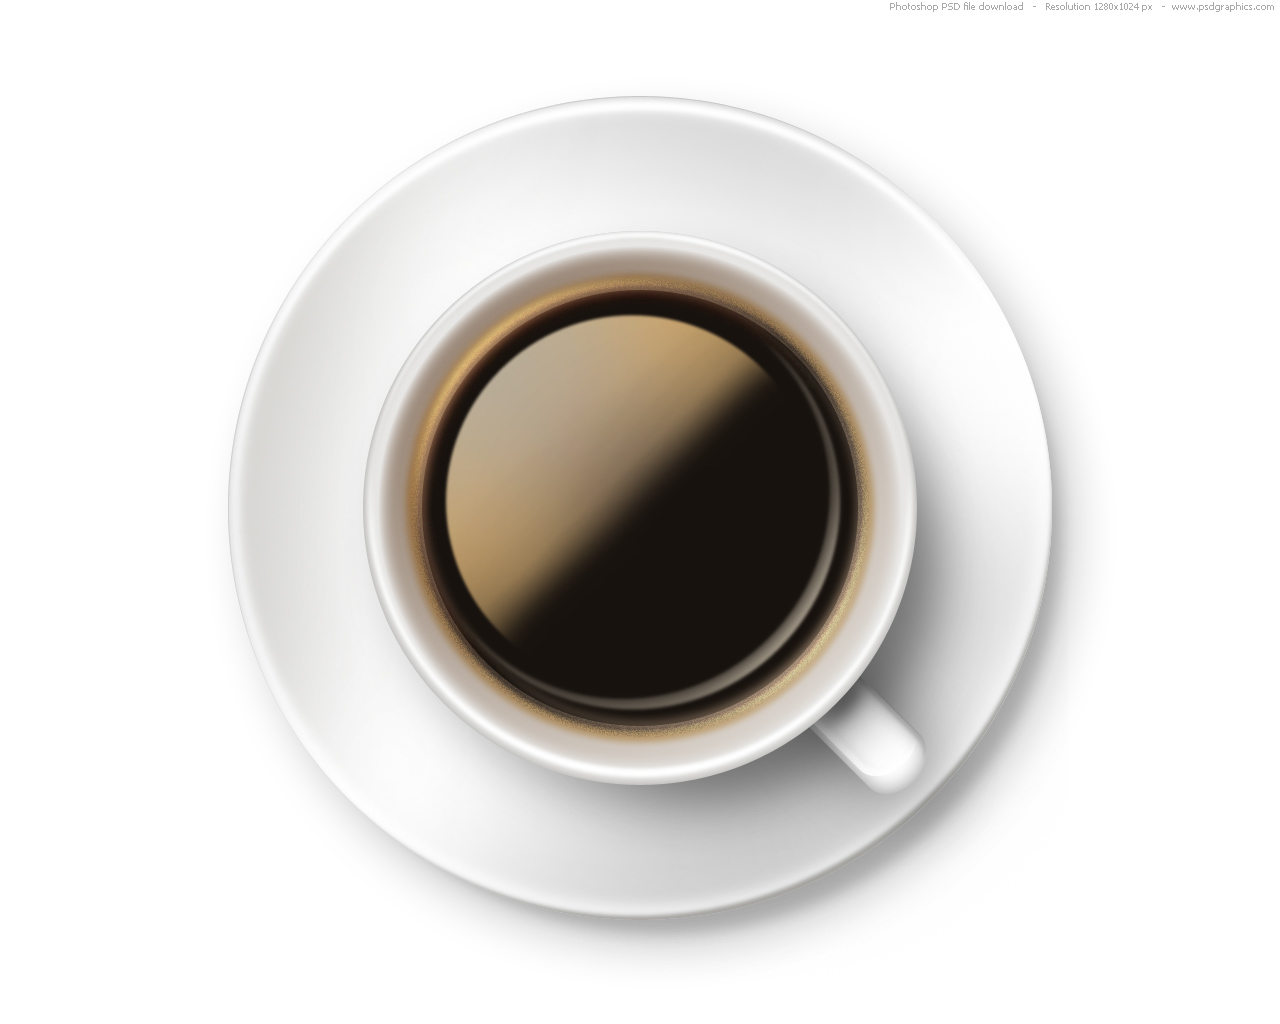 Free Coffee Cup Top View Png, Download Free Clip Art, Free.